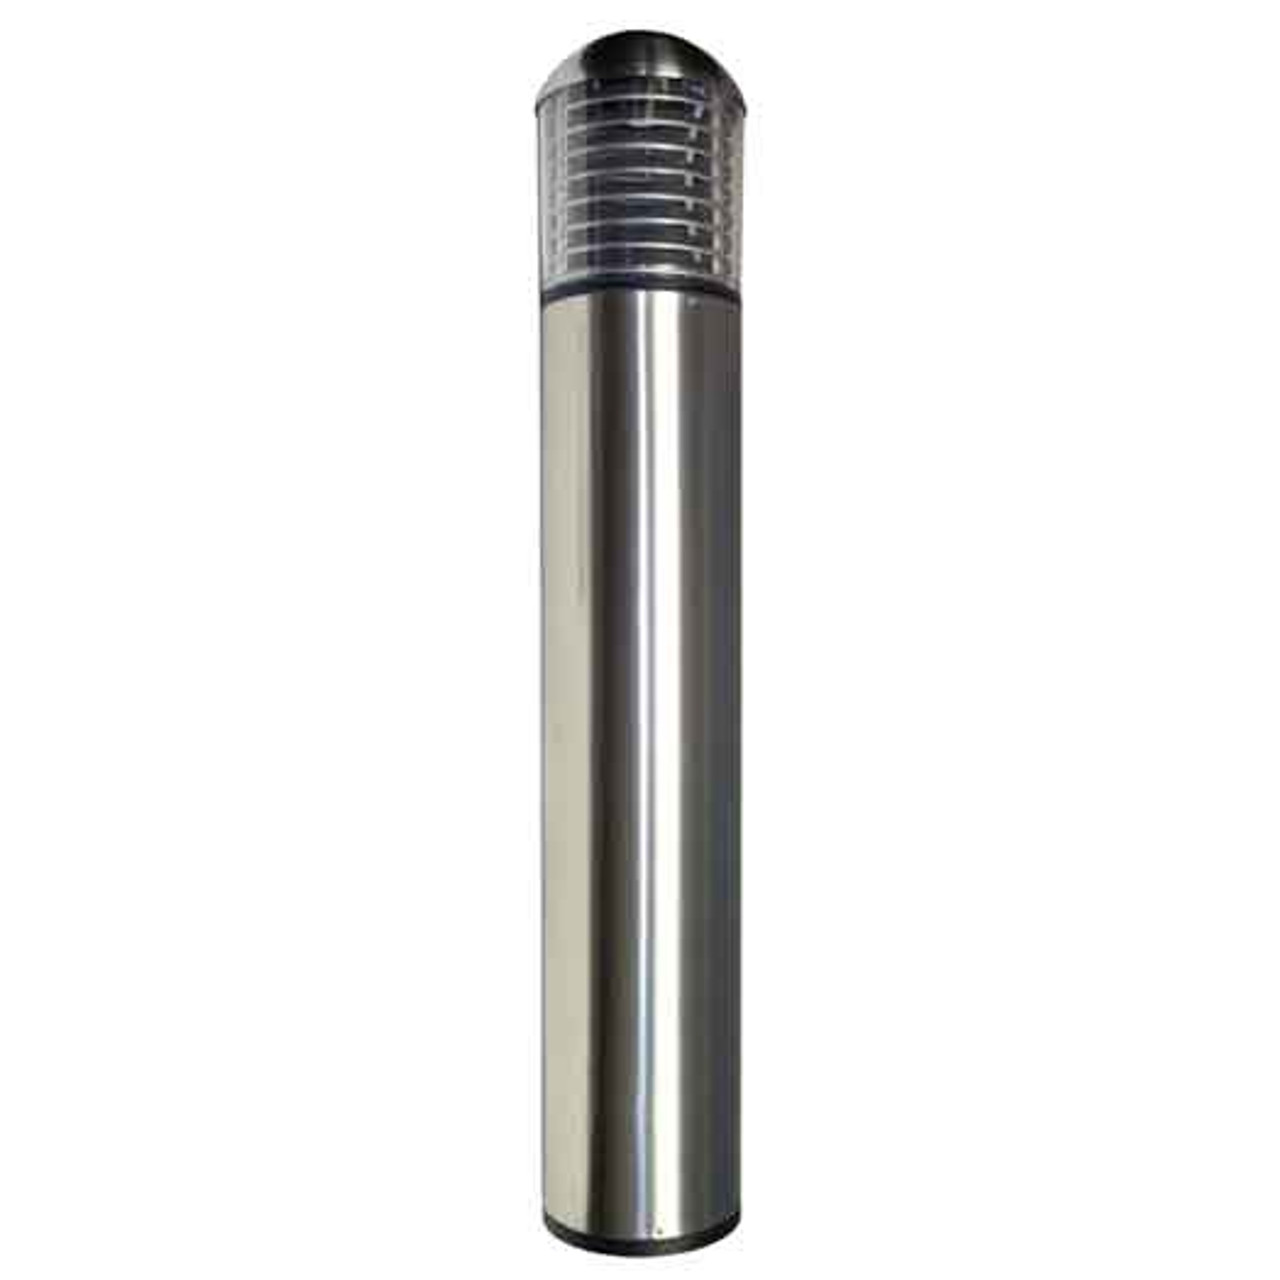 Stainless Steel 15W LED Bollard Dome Top Louvers